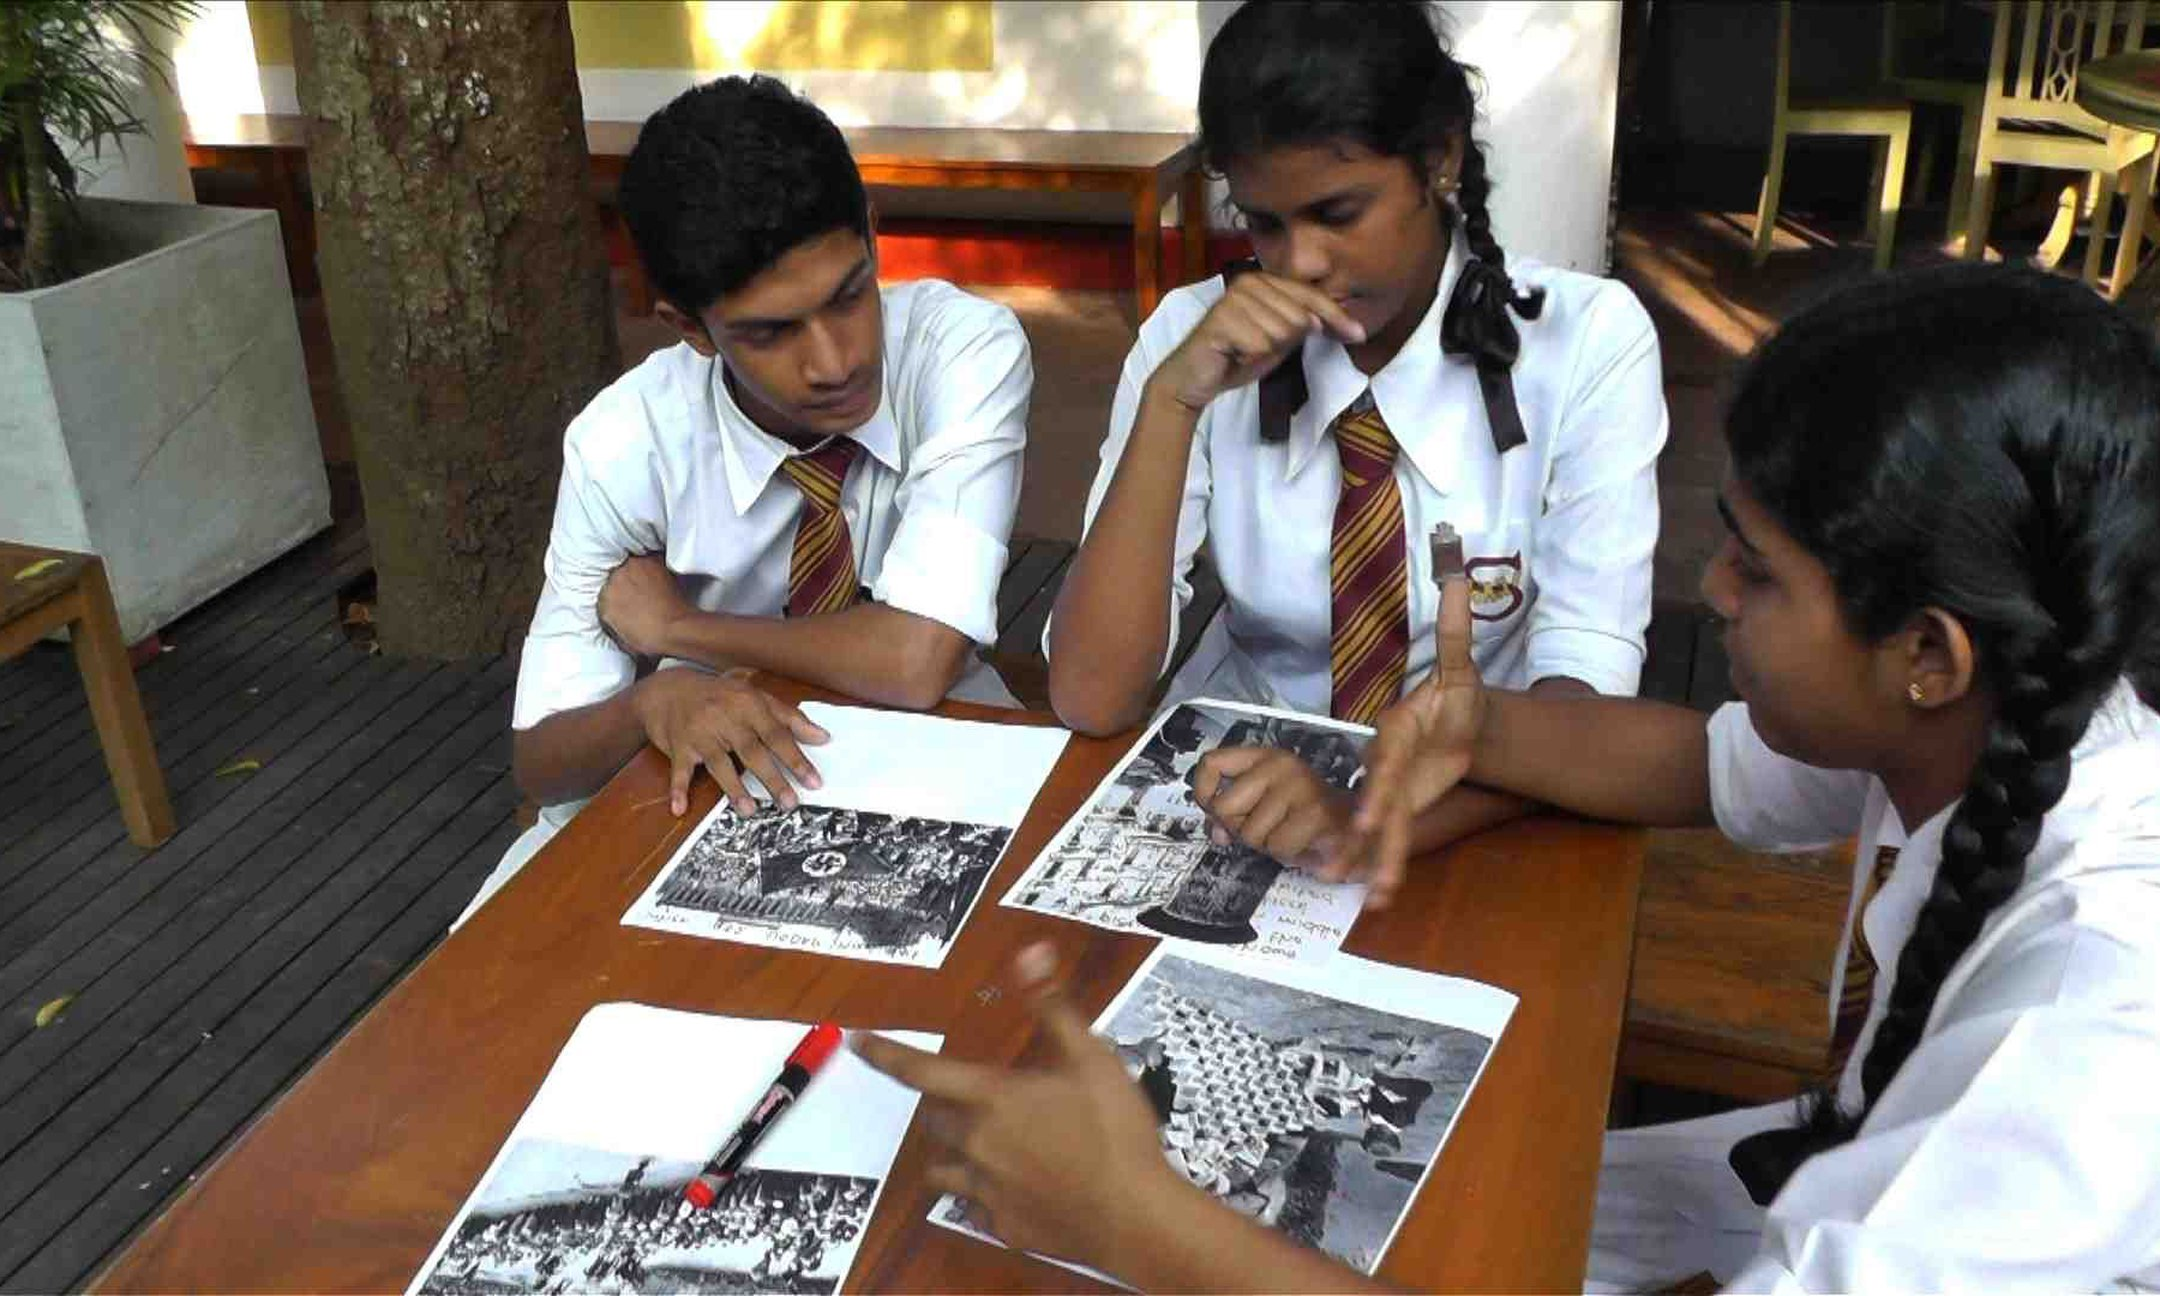 Peer guide training in Colombo